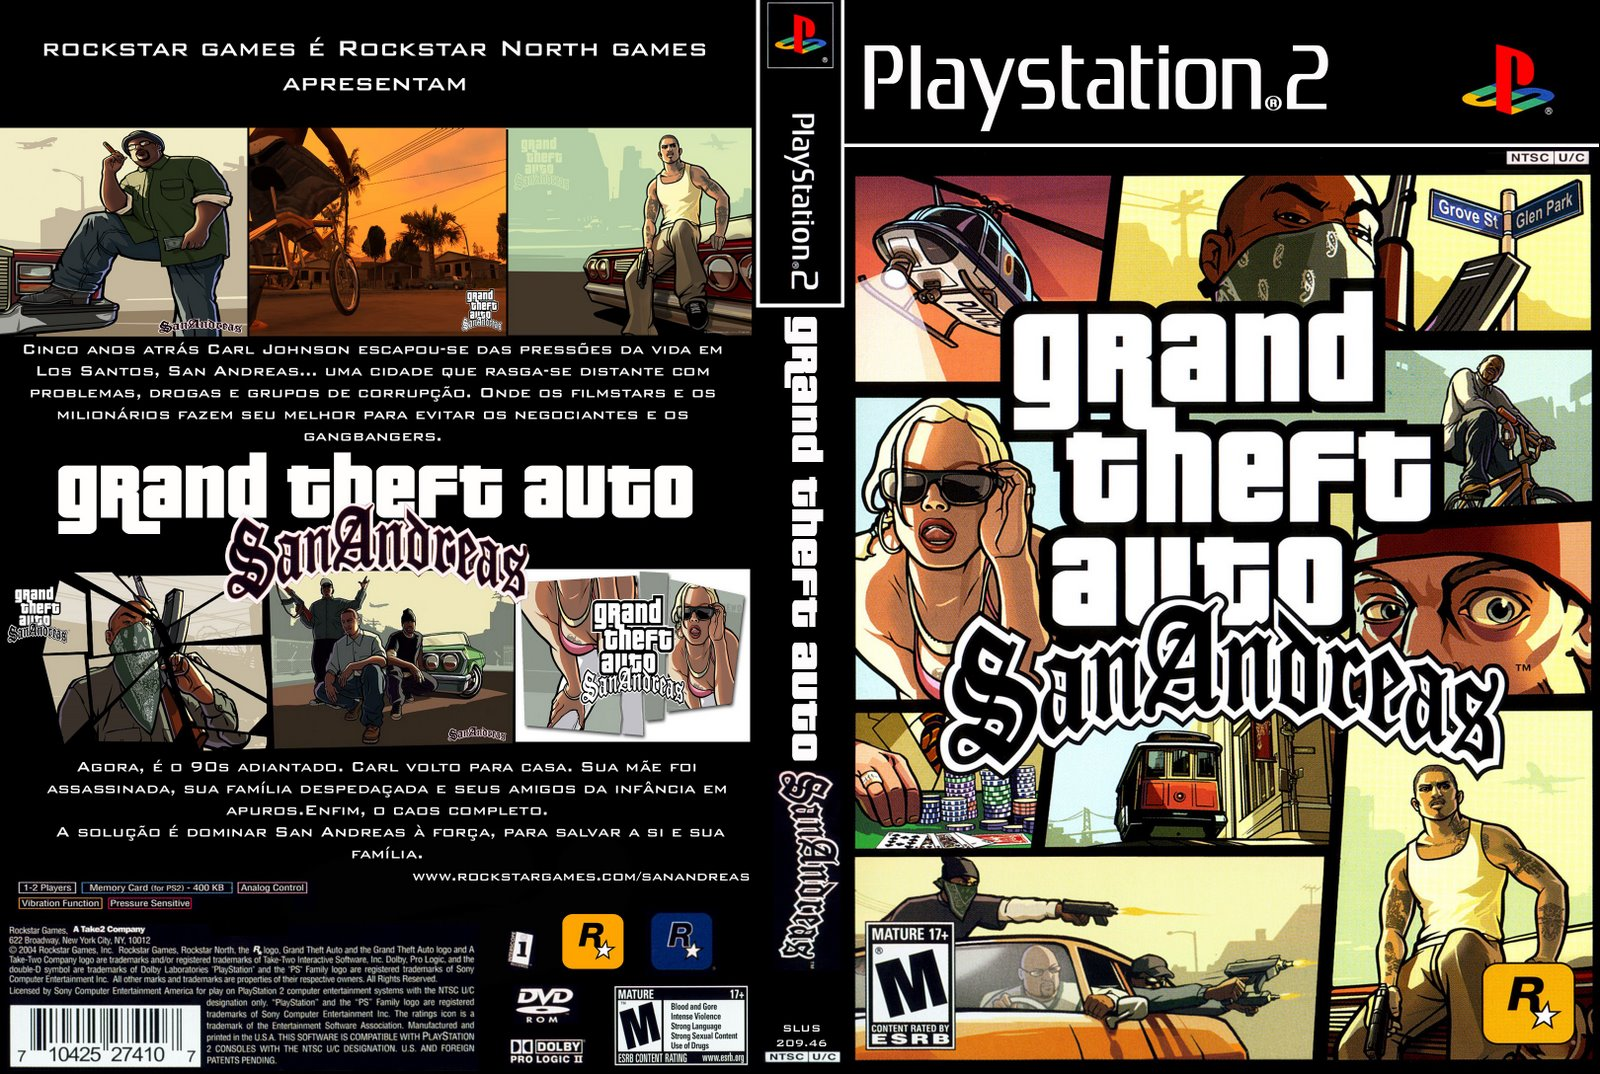 Gta hentai ps 2 sex video